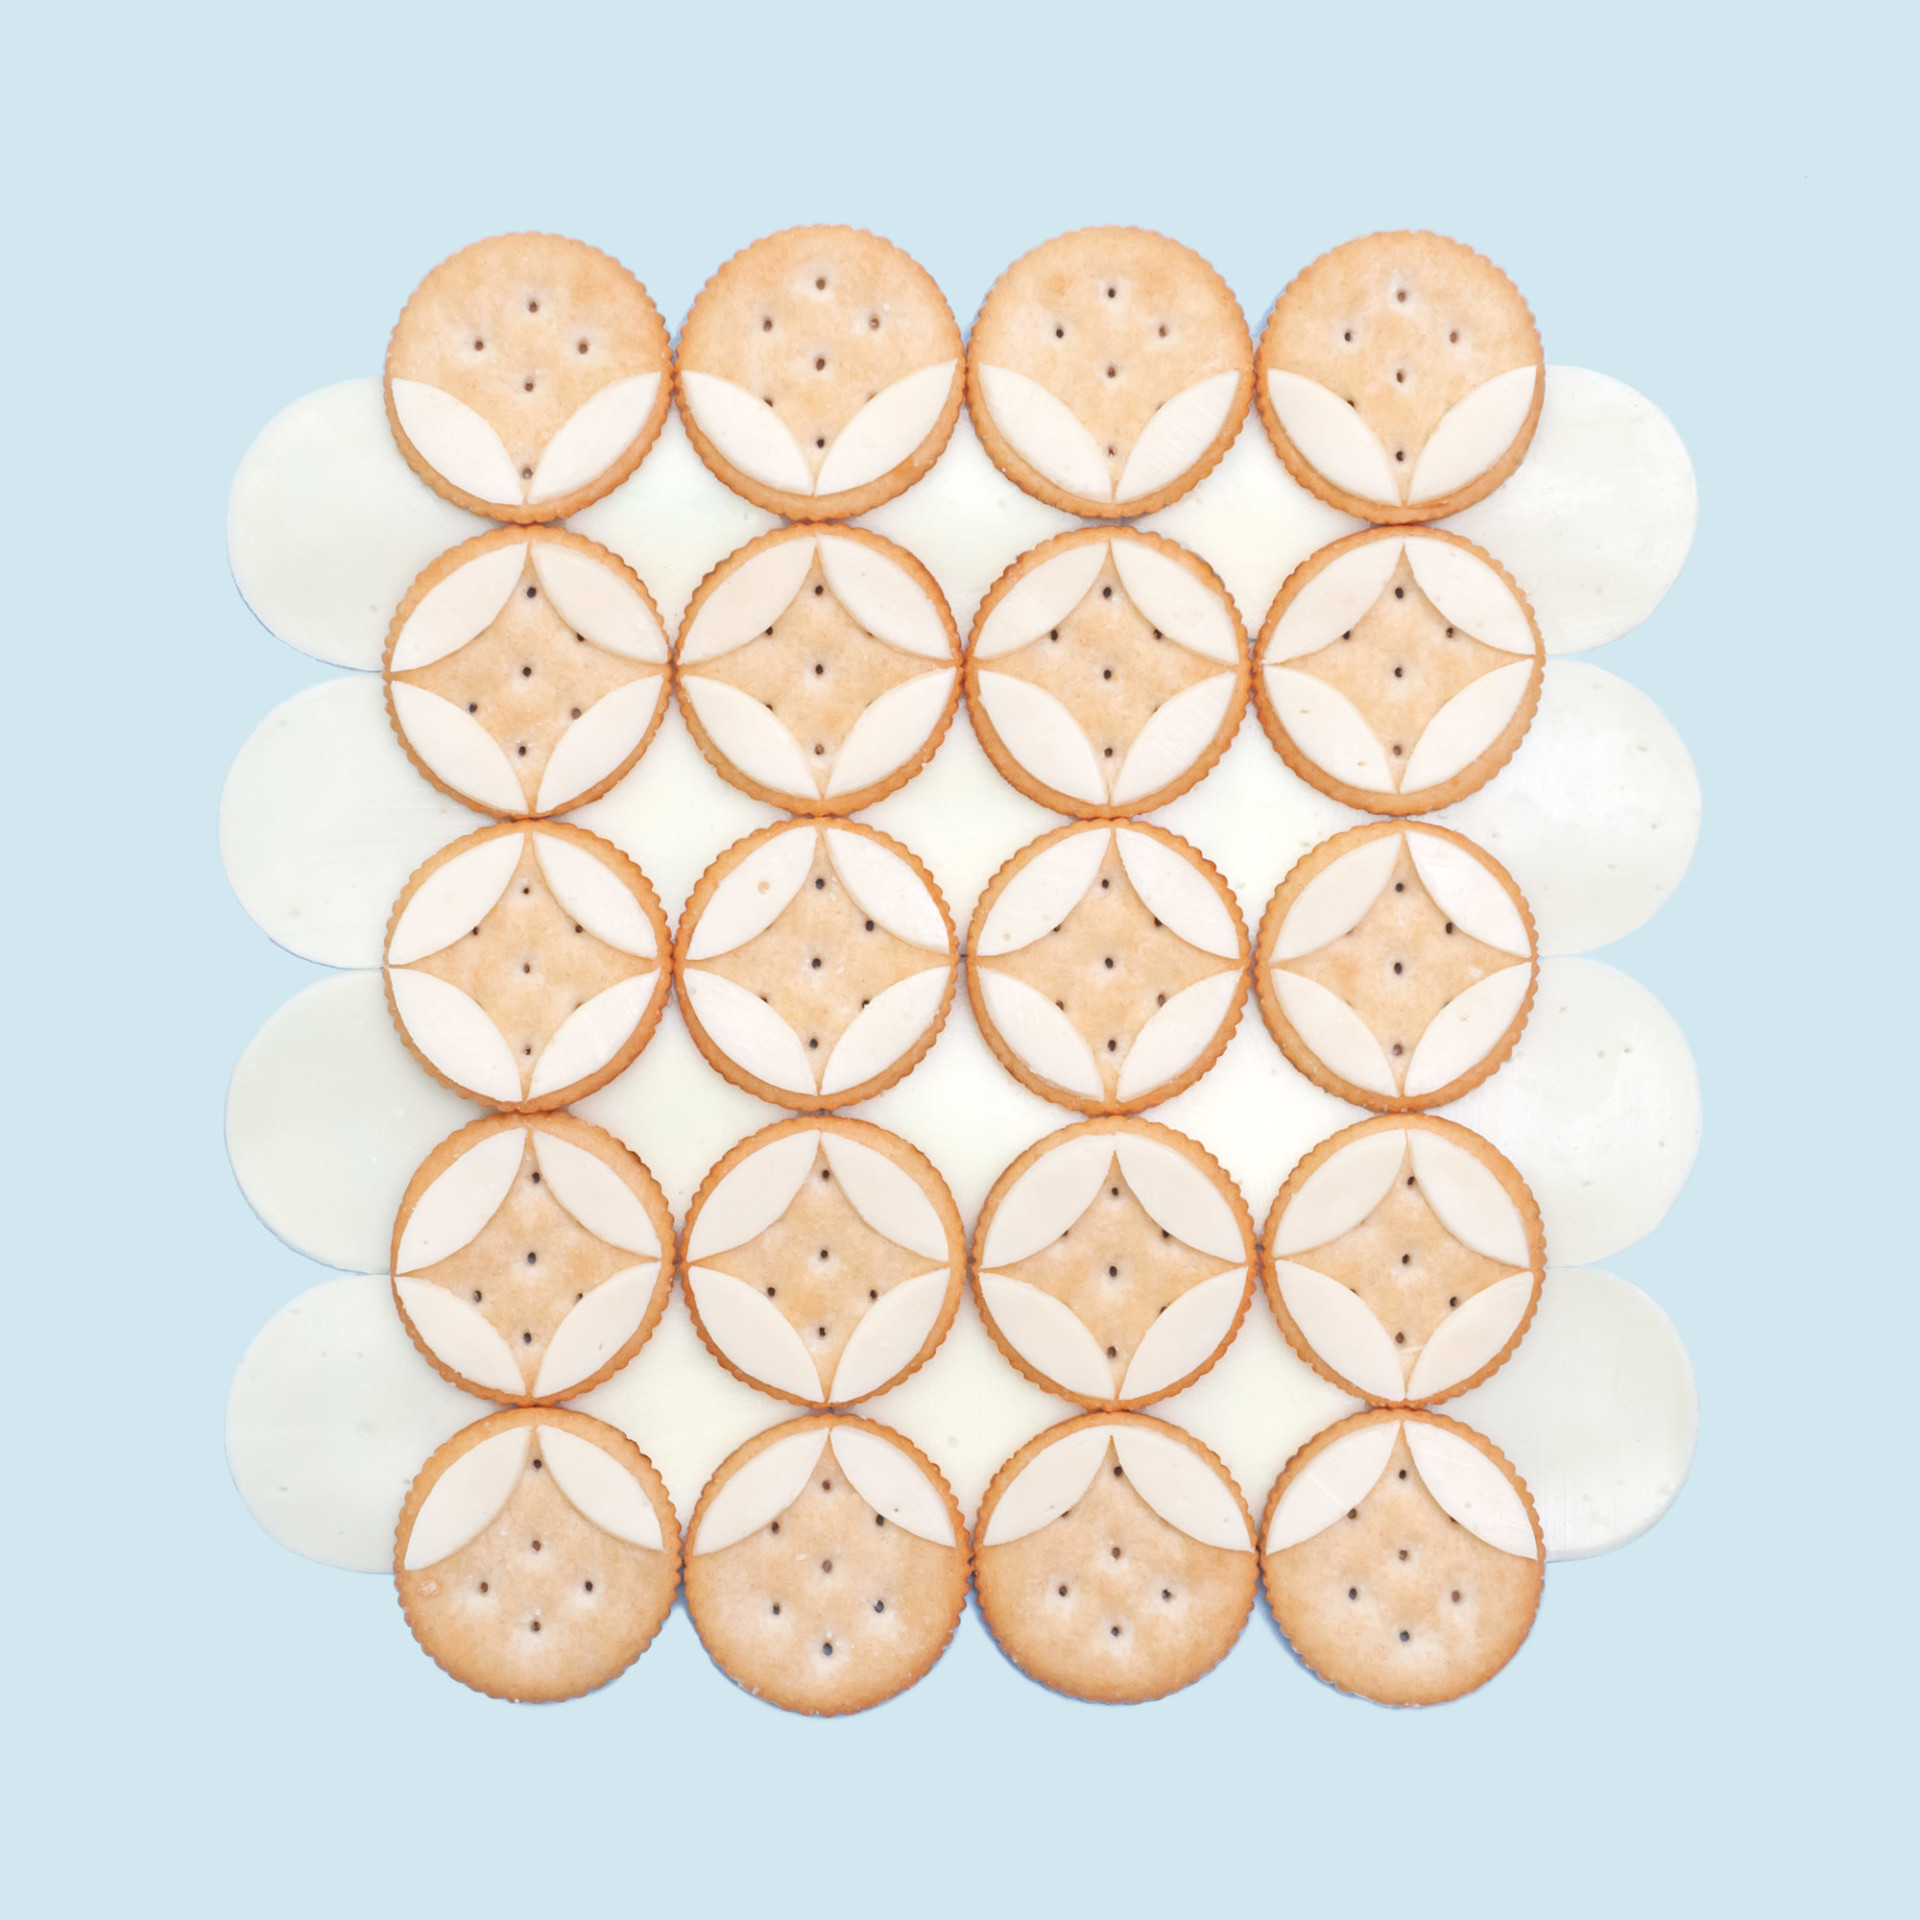 cheese on crackers / circles on circles by Kristen Meyer